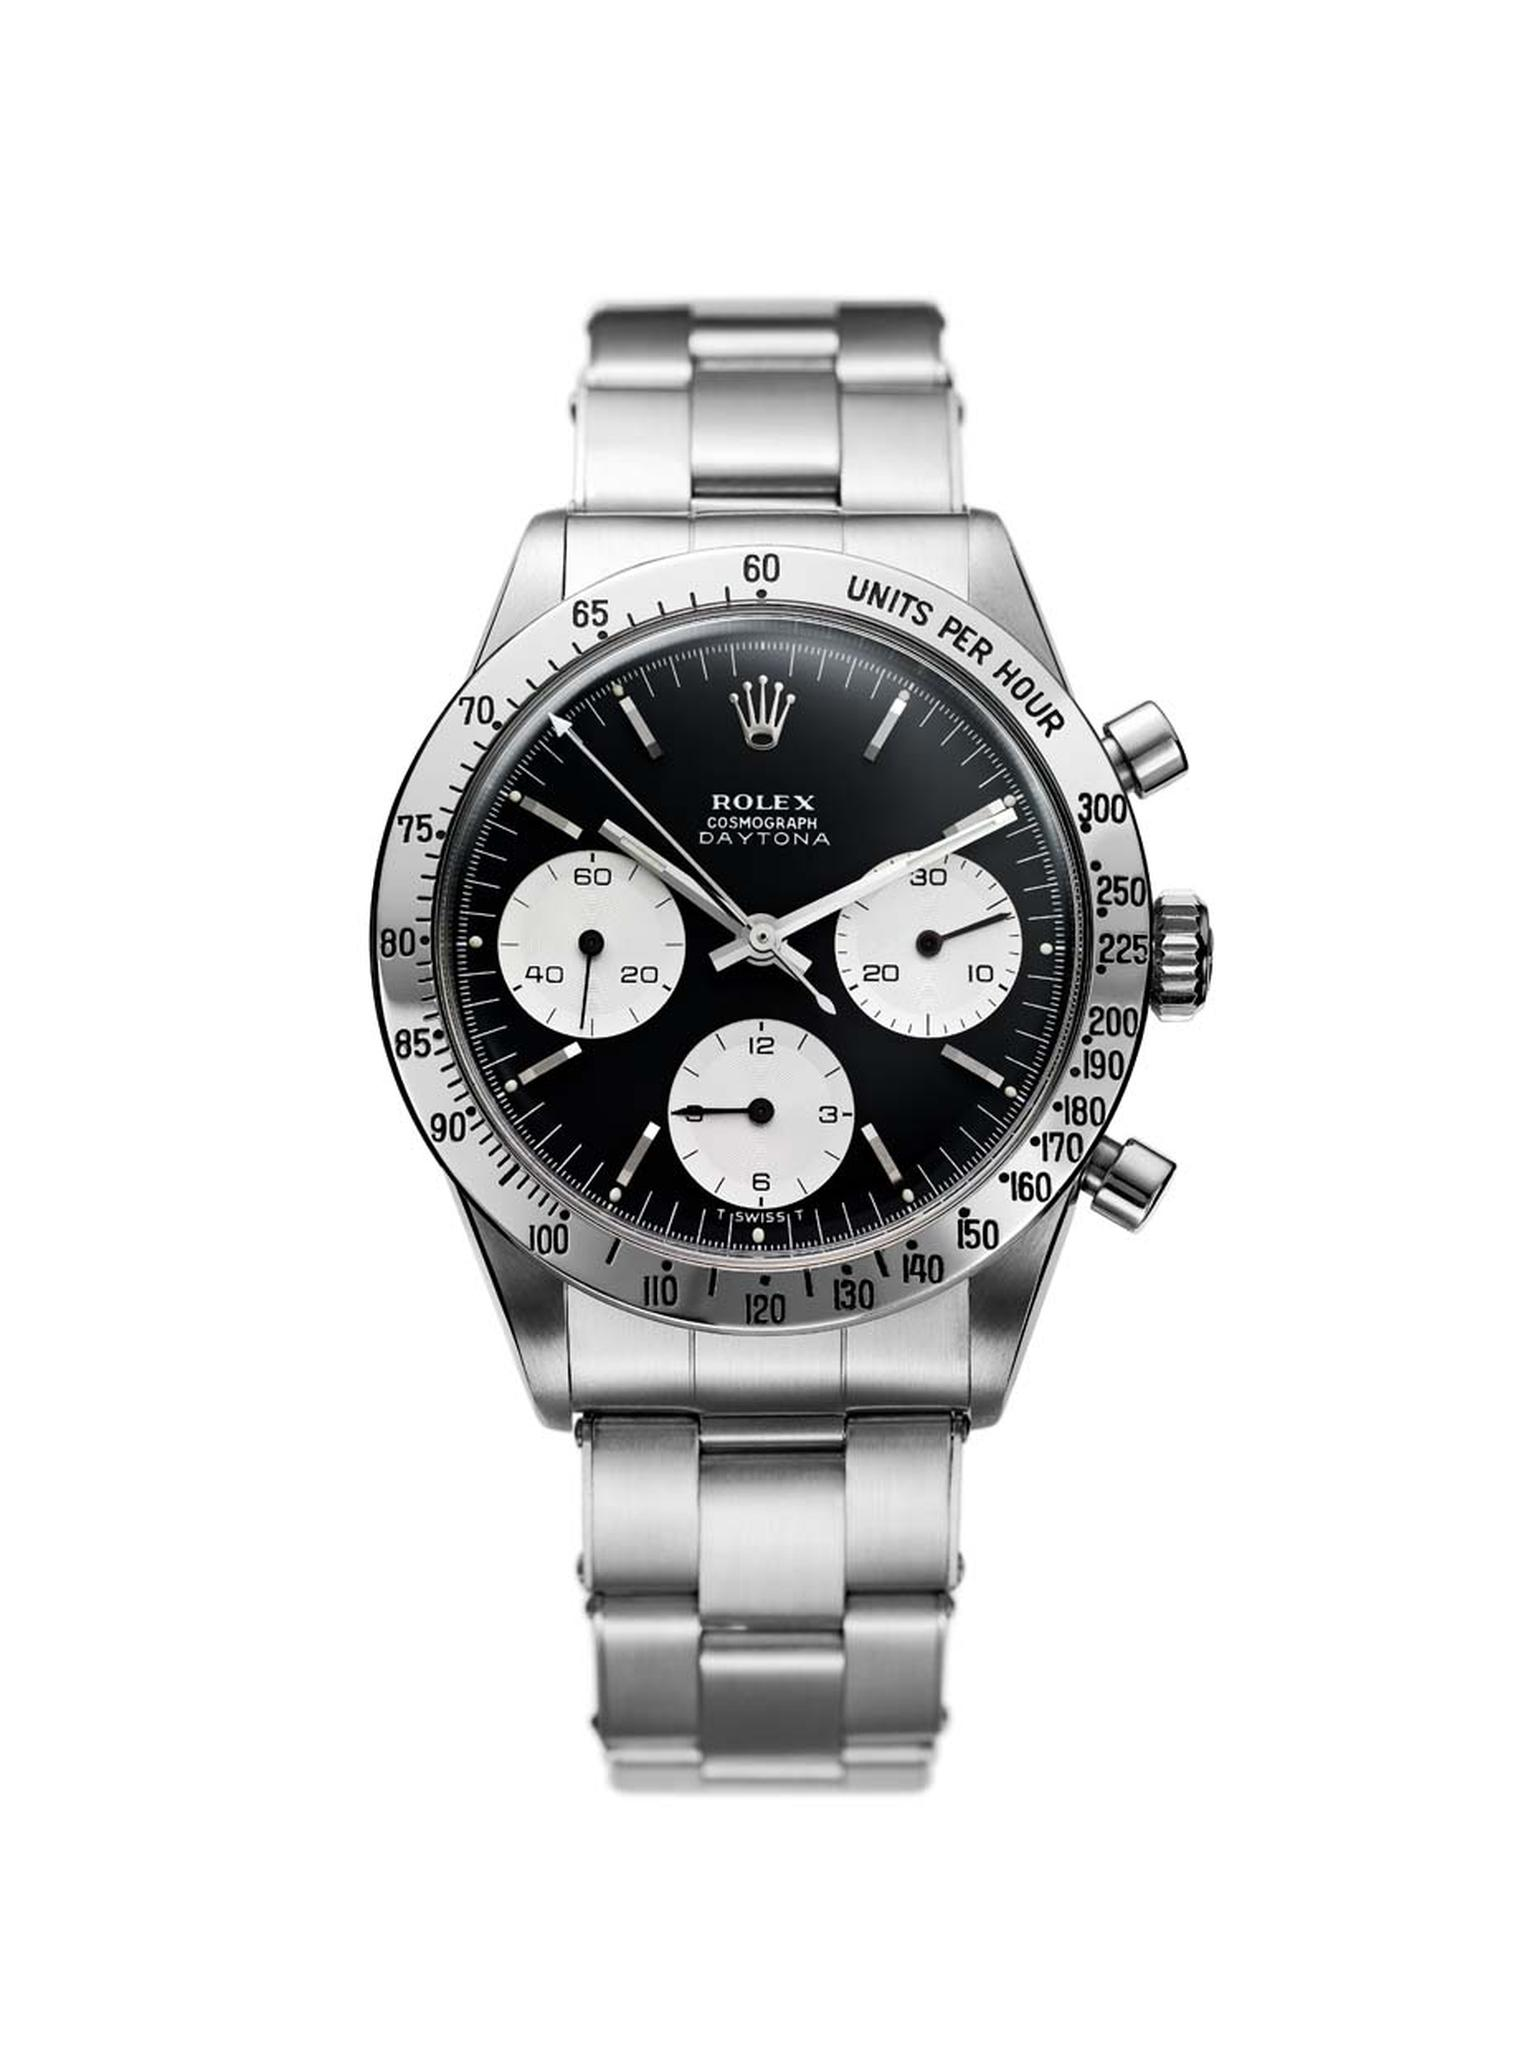 Rolex Cosmograph Daytona 1963 is, for many enthusiasts, the world's most iconic sports chronograph thanks to its bold design and impeccable performance.